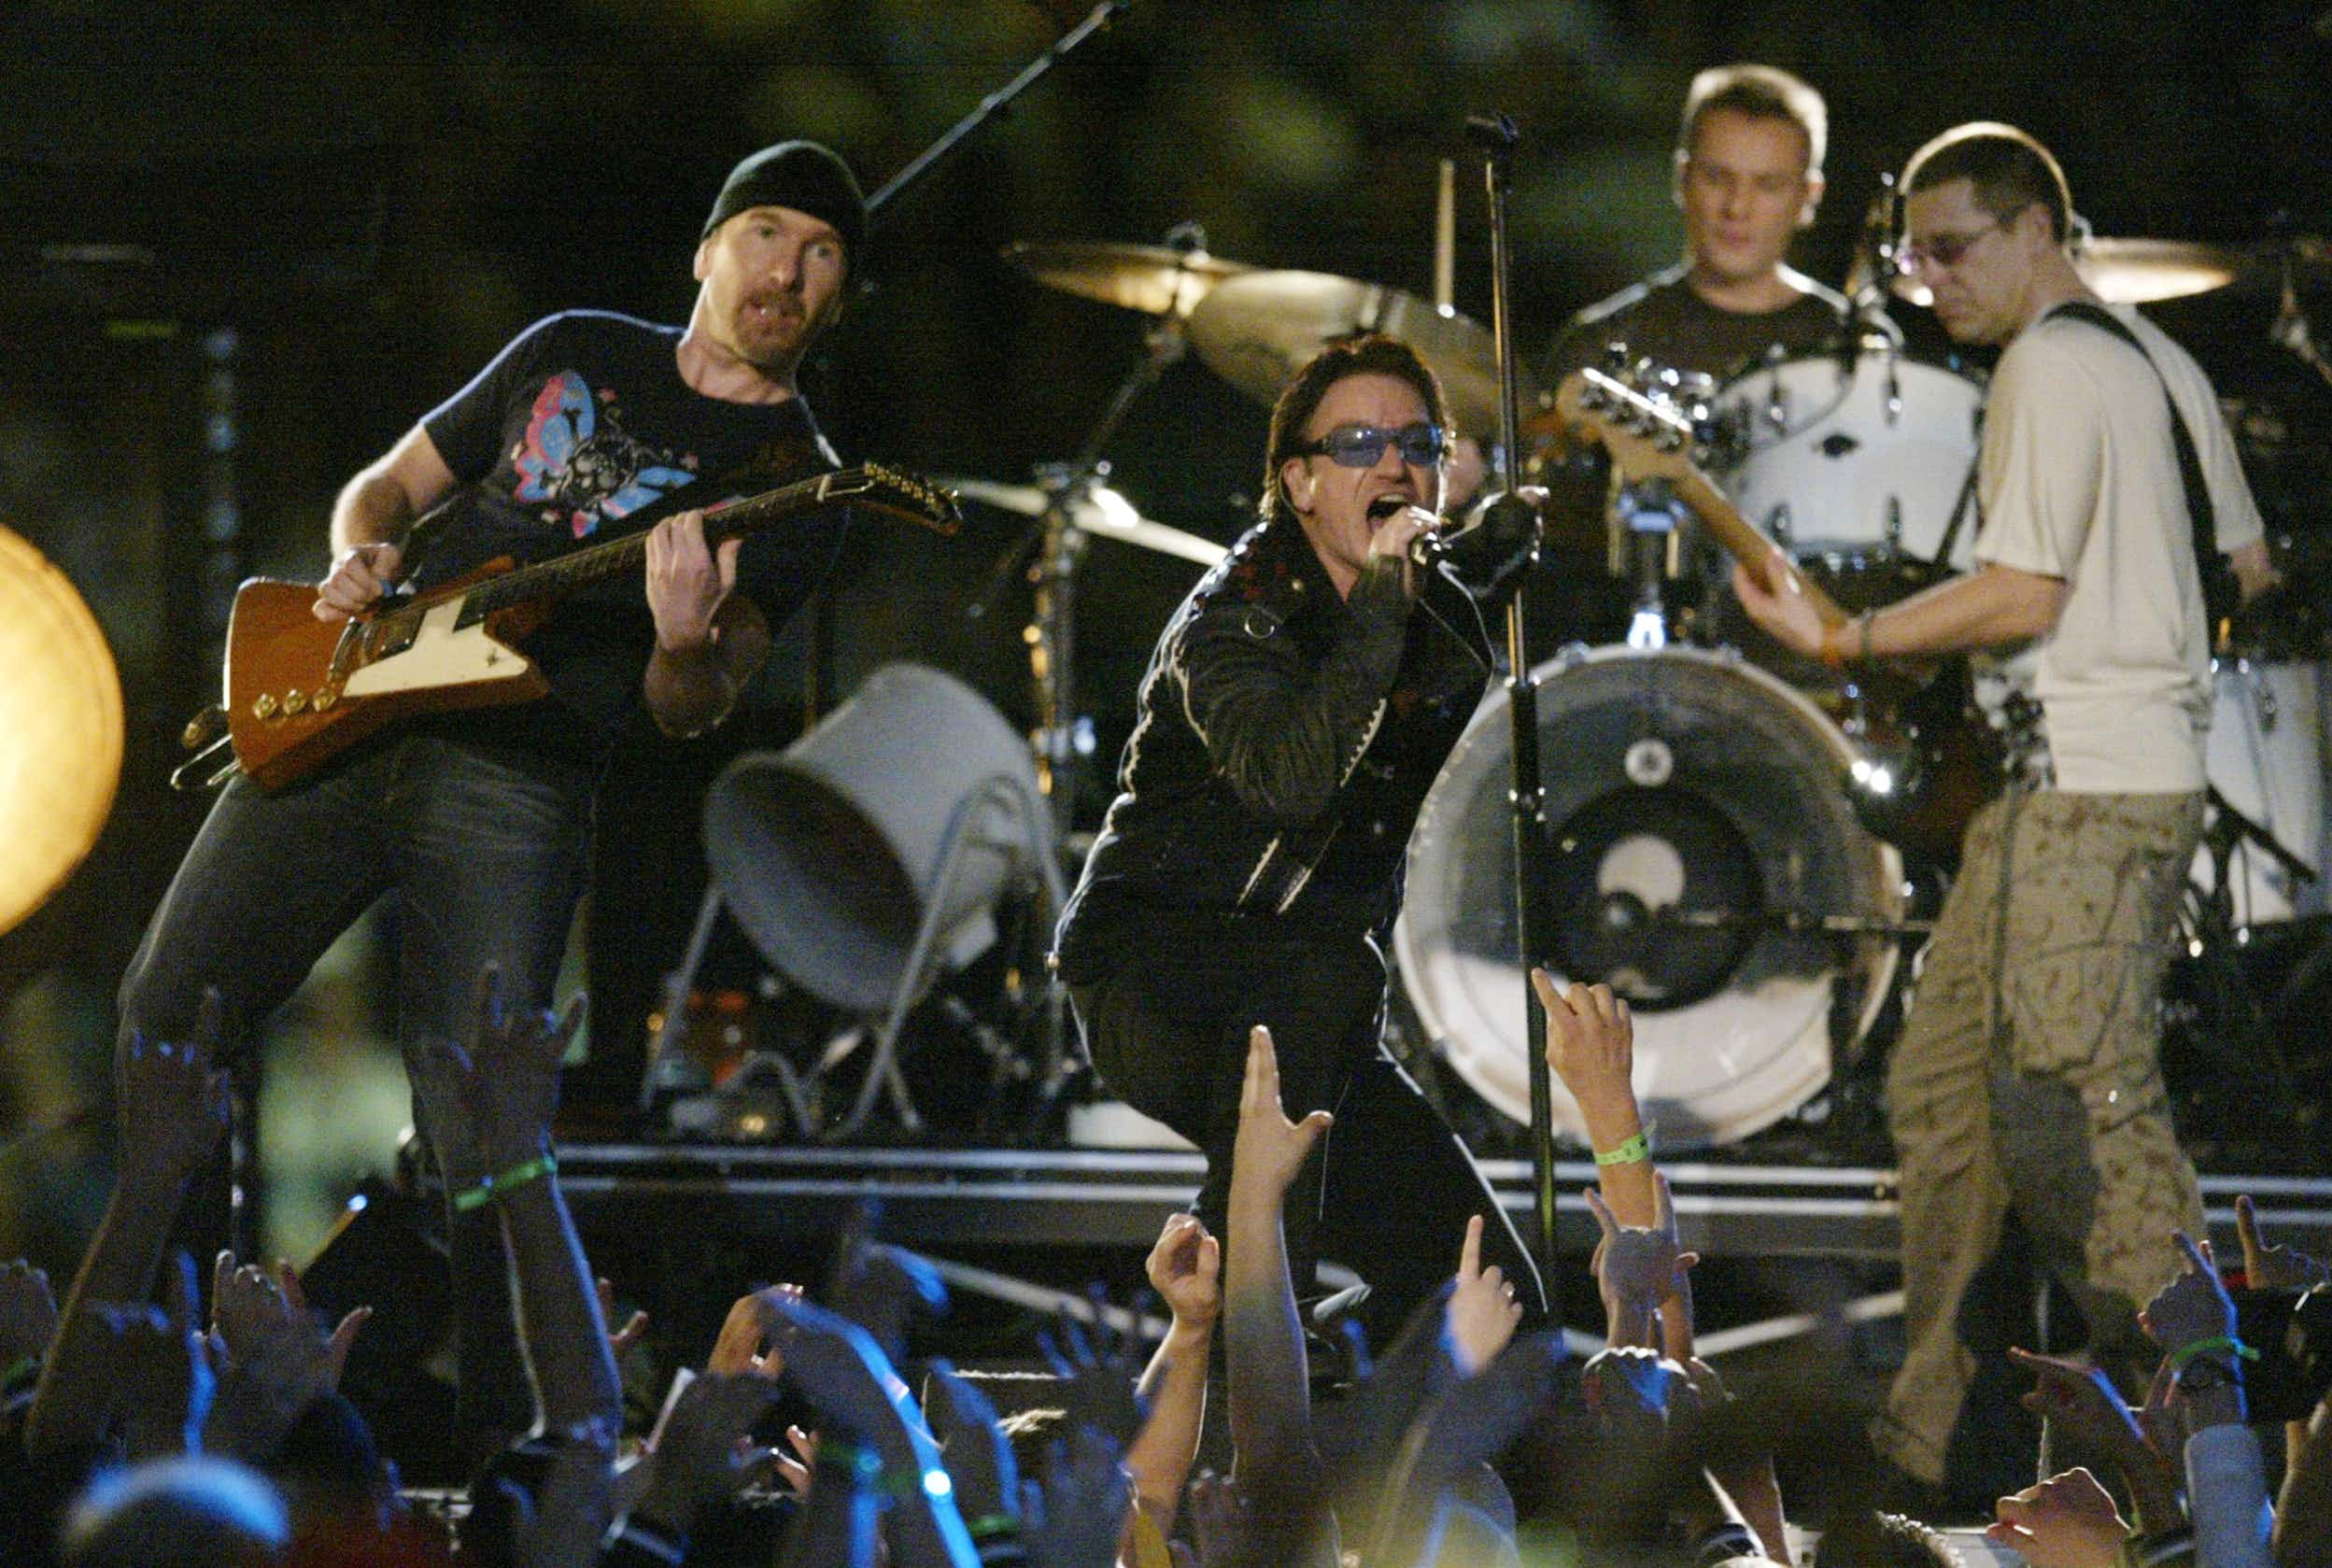 U2 recorded many albums at Windmill Lane Recording Studios © Jed Jacobsohn/Getty Images